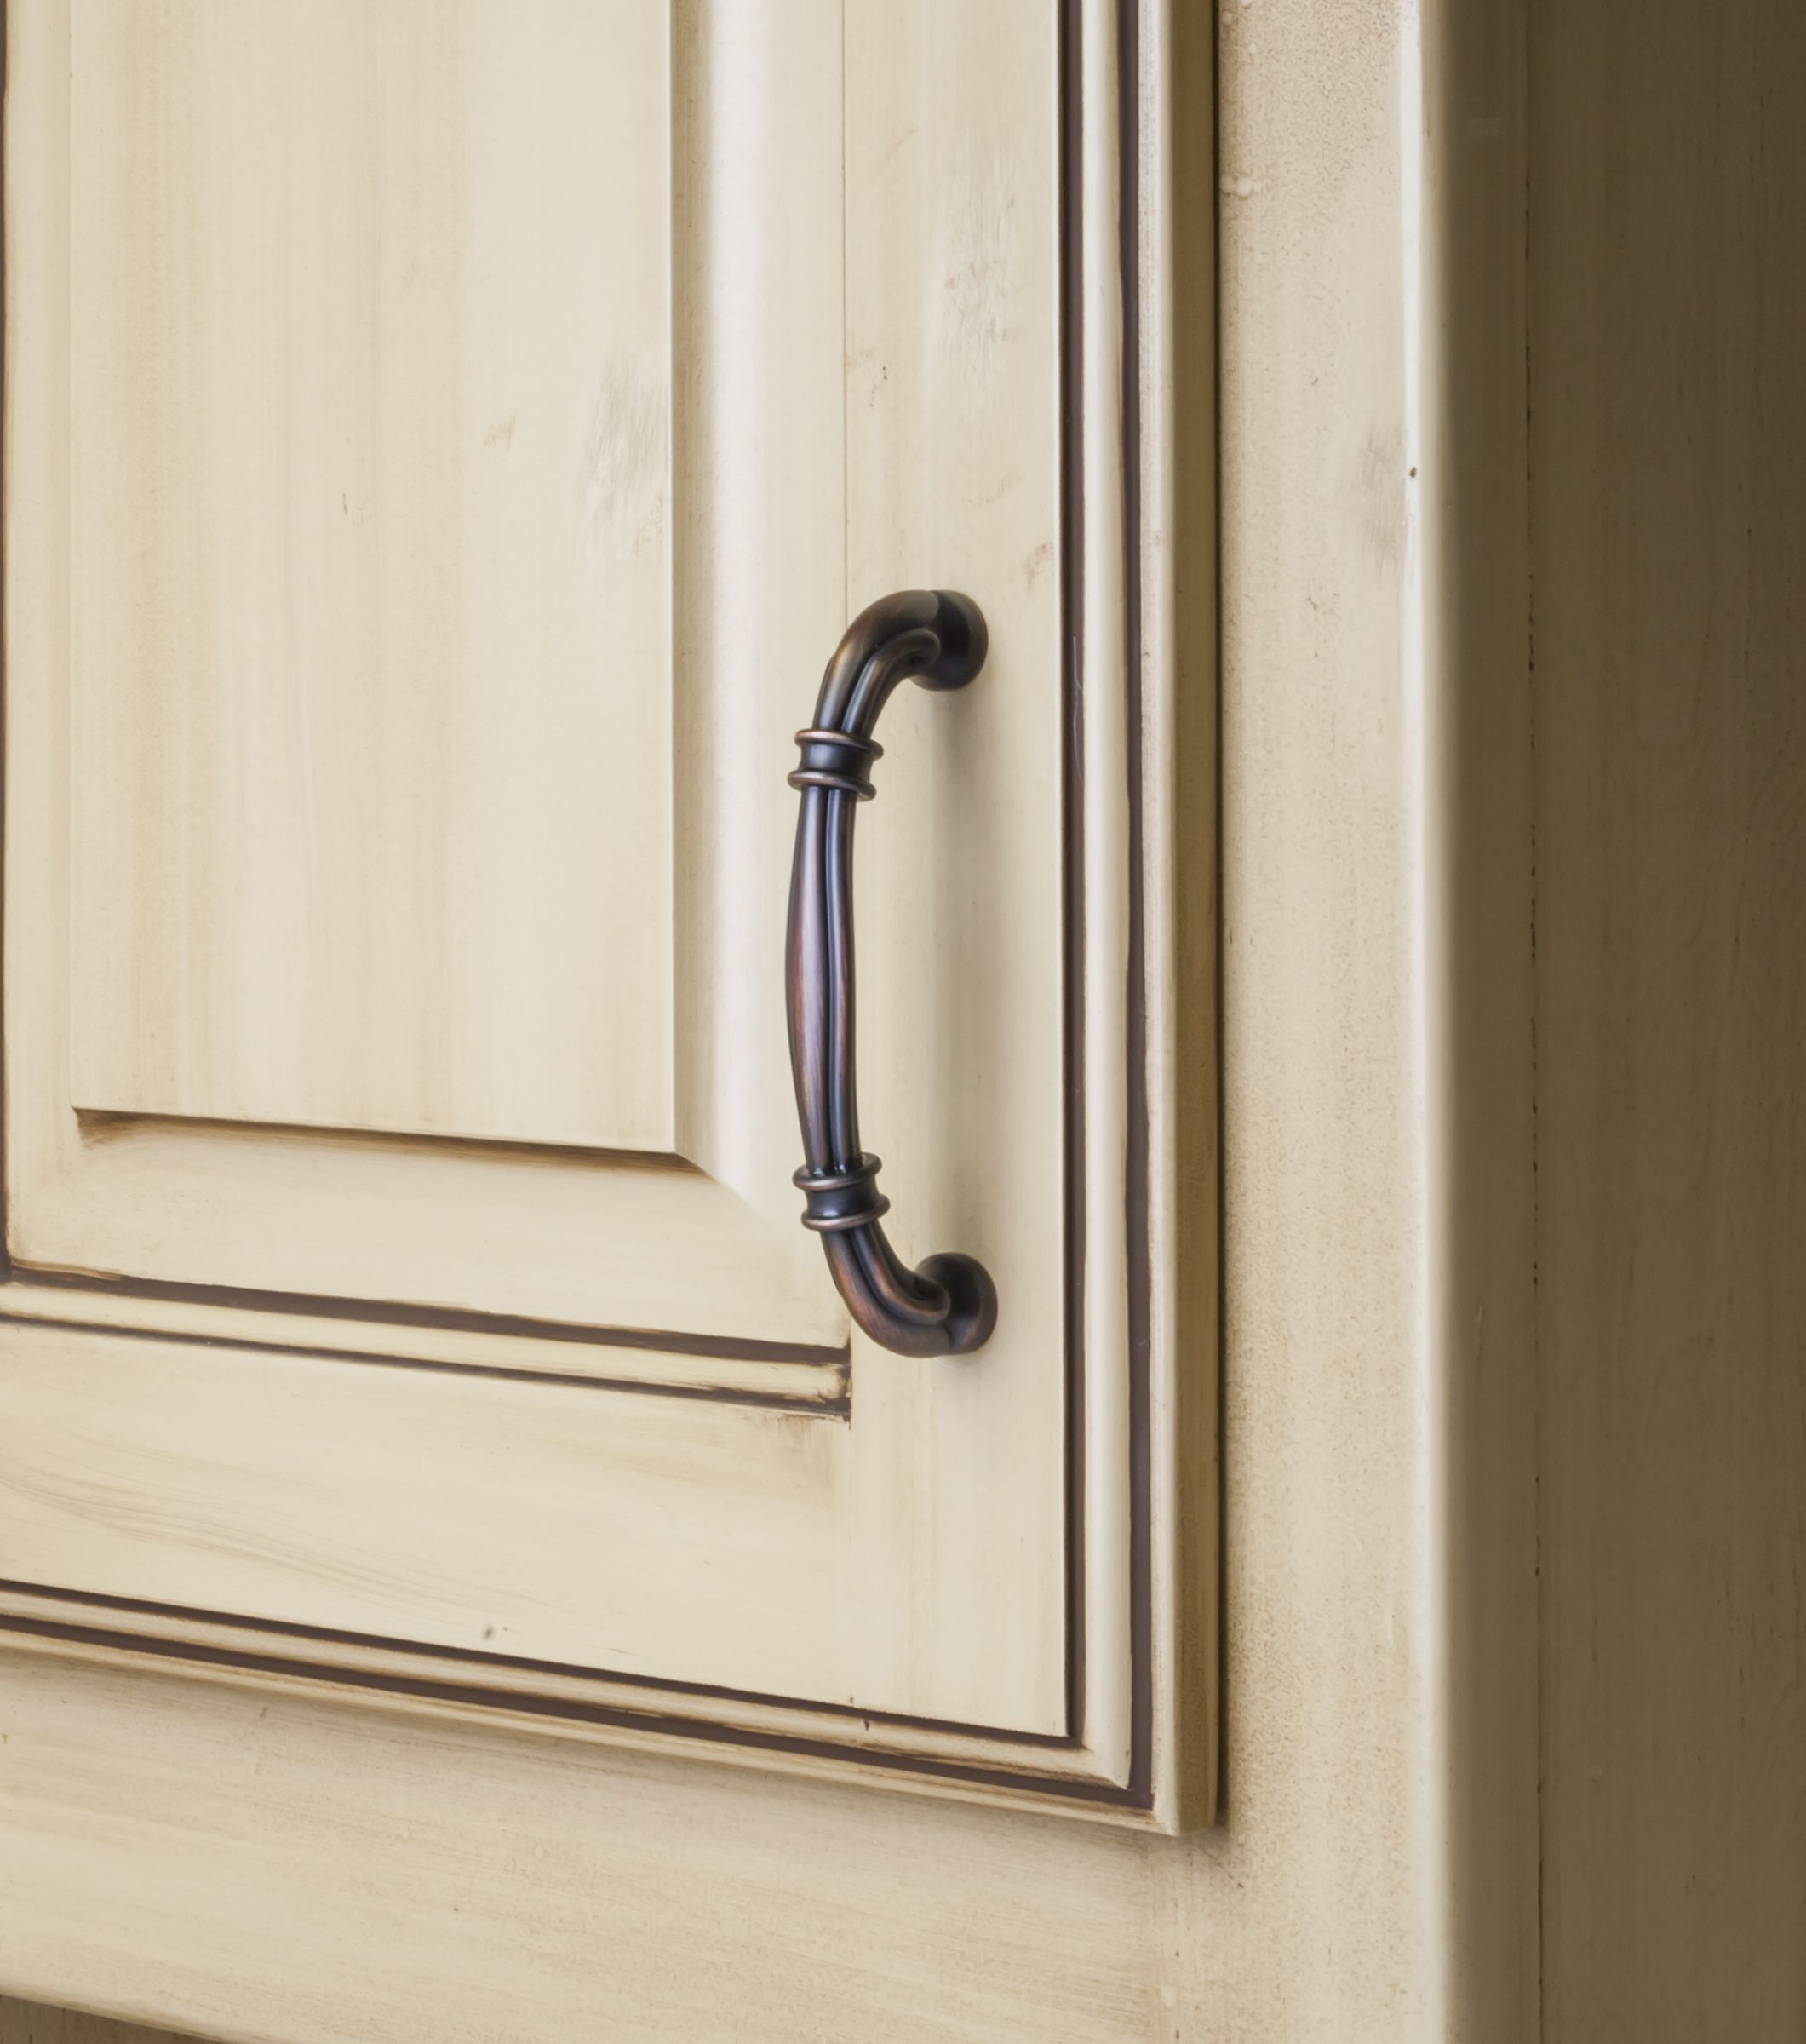 Lafayette Cabinet Pull From Jeffrey Alexander By Hardware Resources 317 96dbac Shown In Use